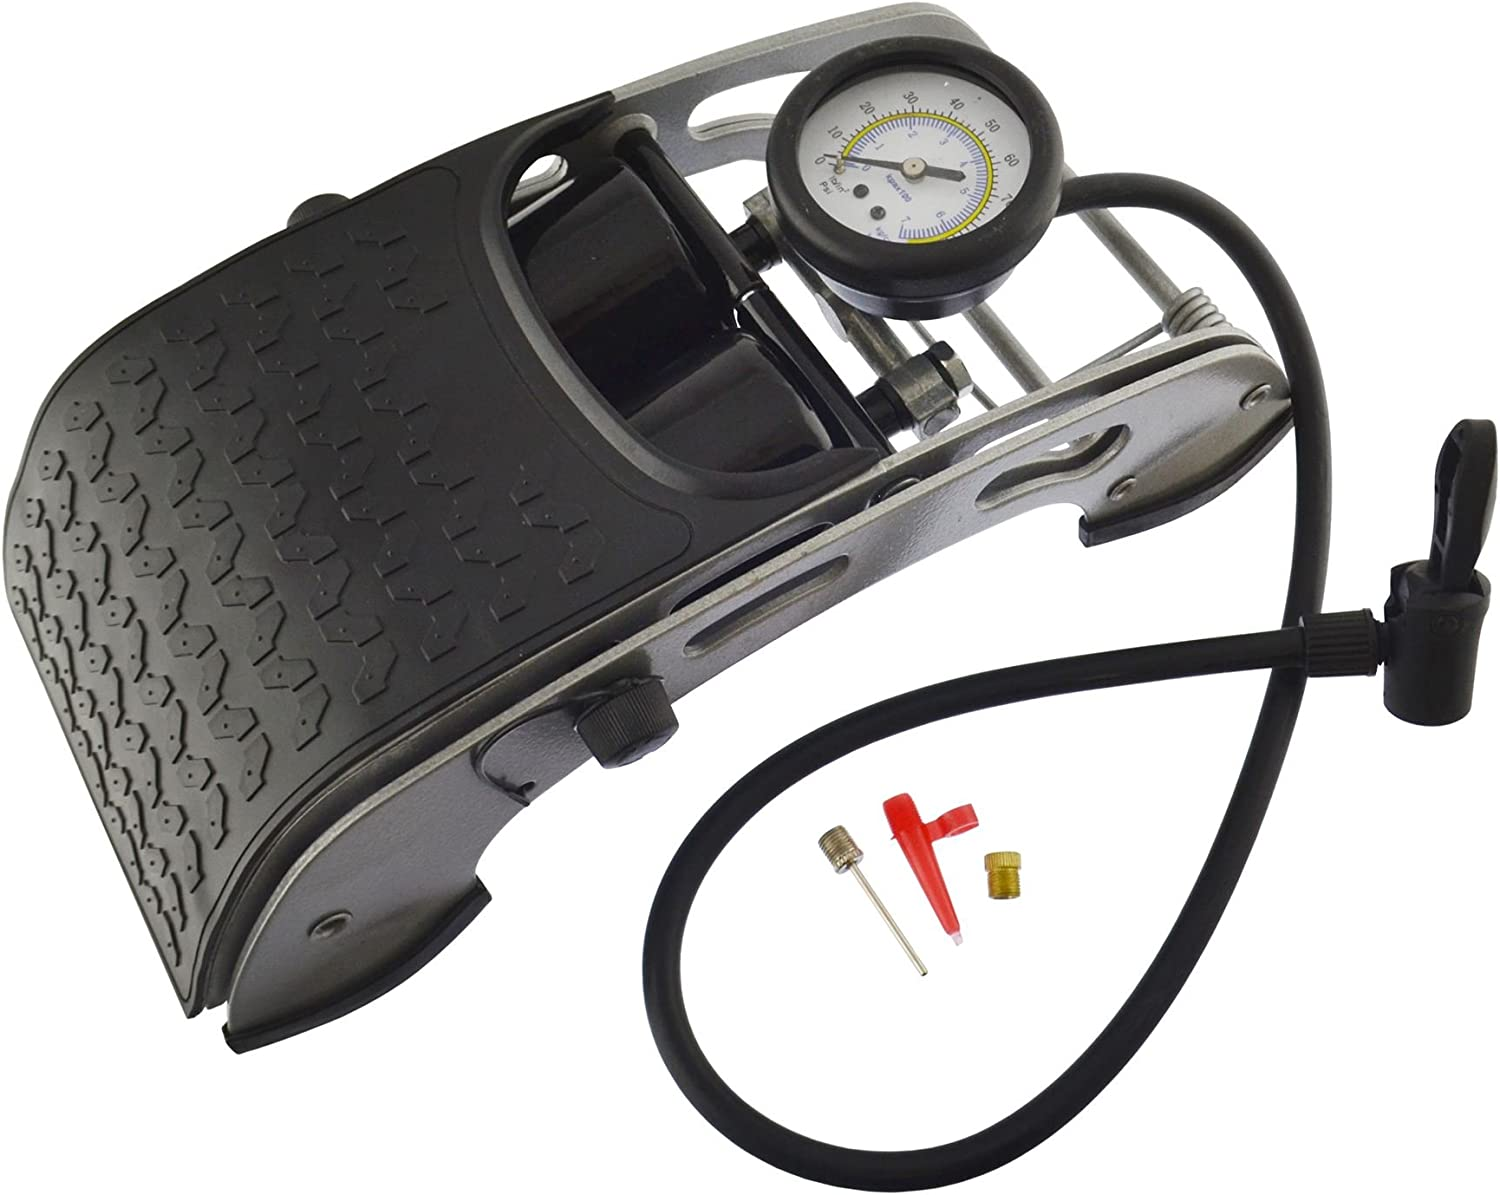 Motorcycle Wheel Tyre Tire Portable Foot Pedal Inflator Tool Air Pump With Gauge